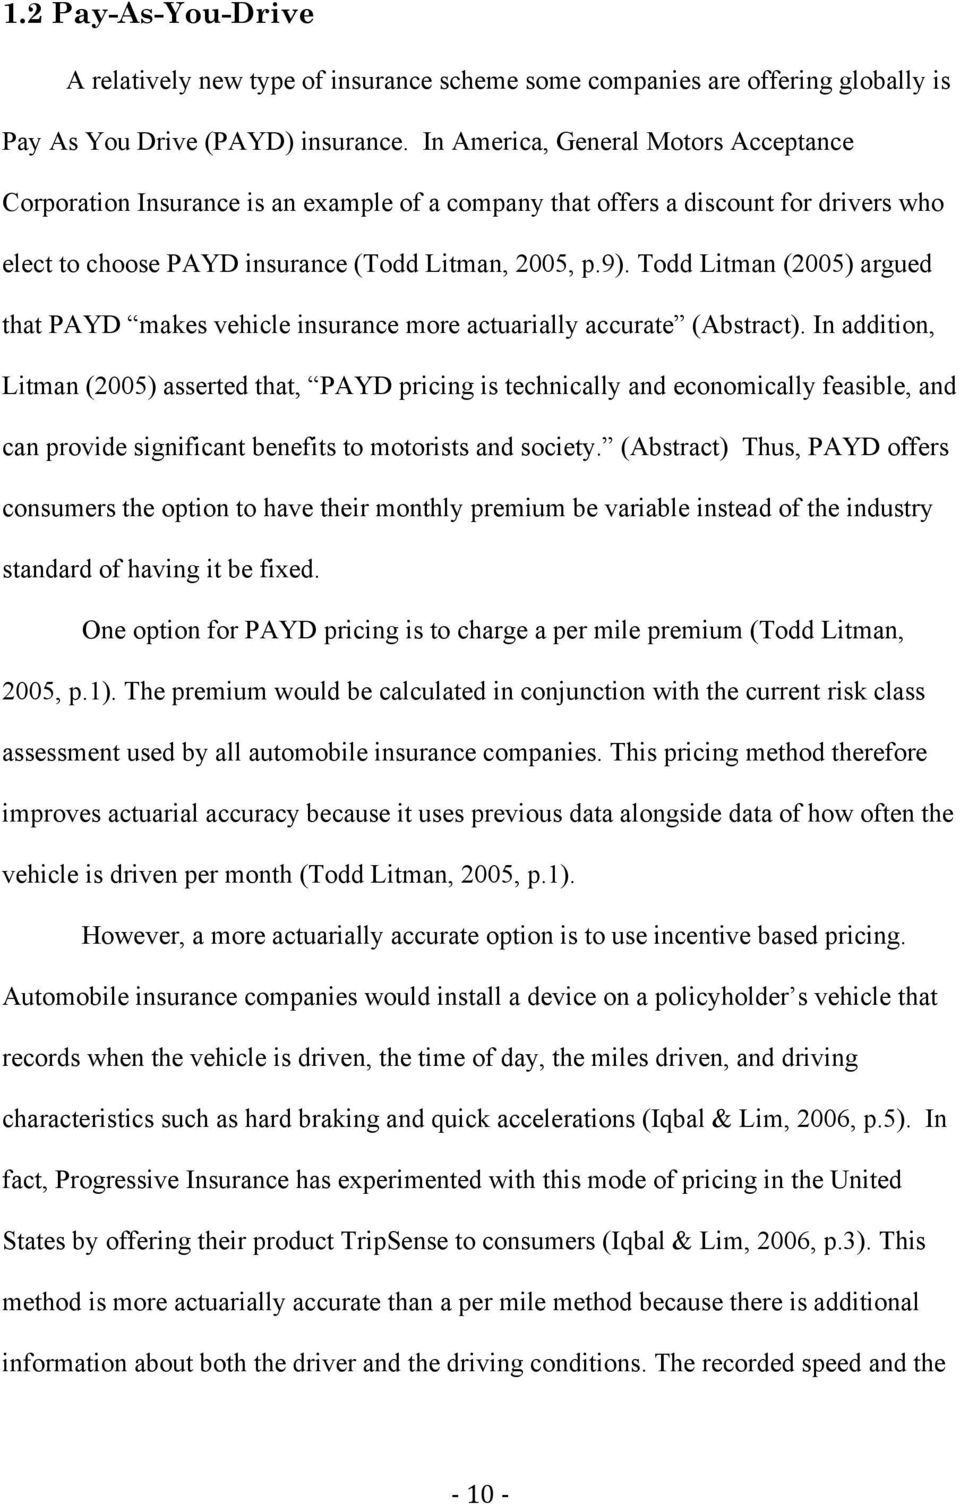 Todd Litman (2005) argued that PAYD makes vehicle insurance more actuarially accurate (Abstract).